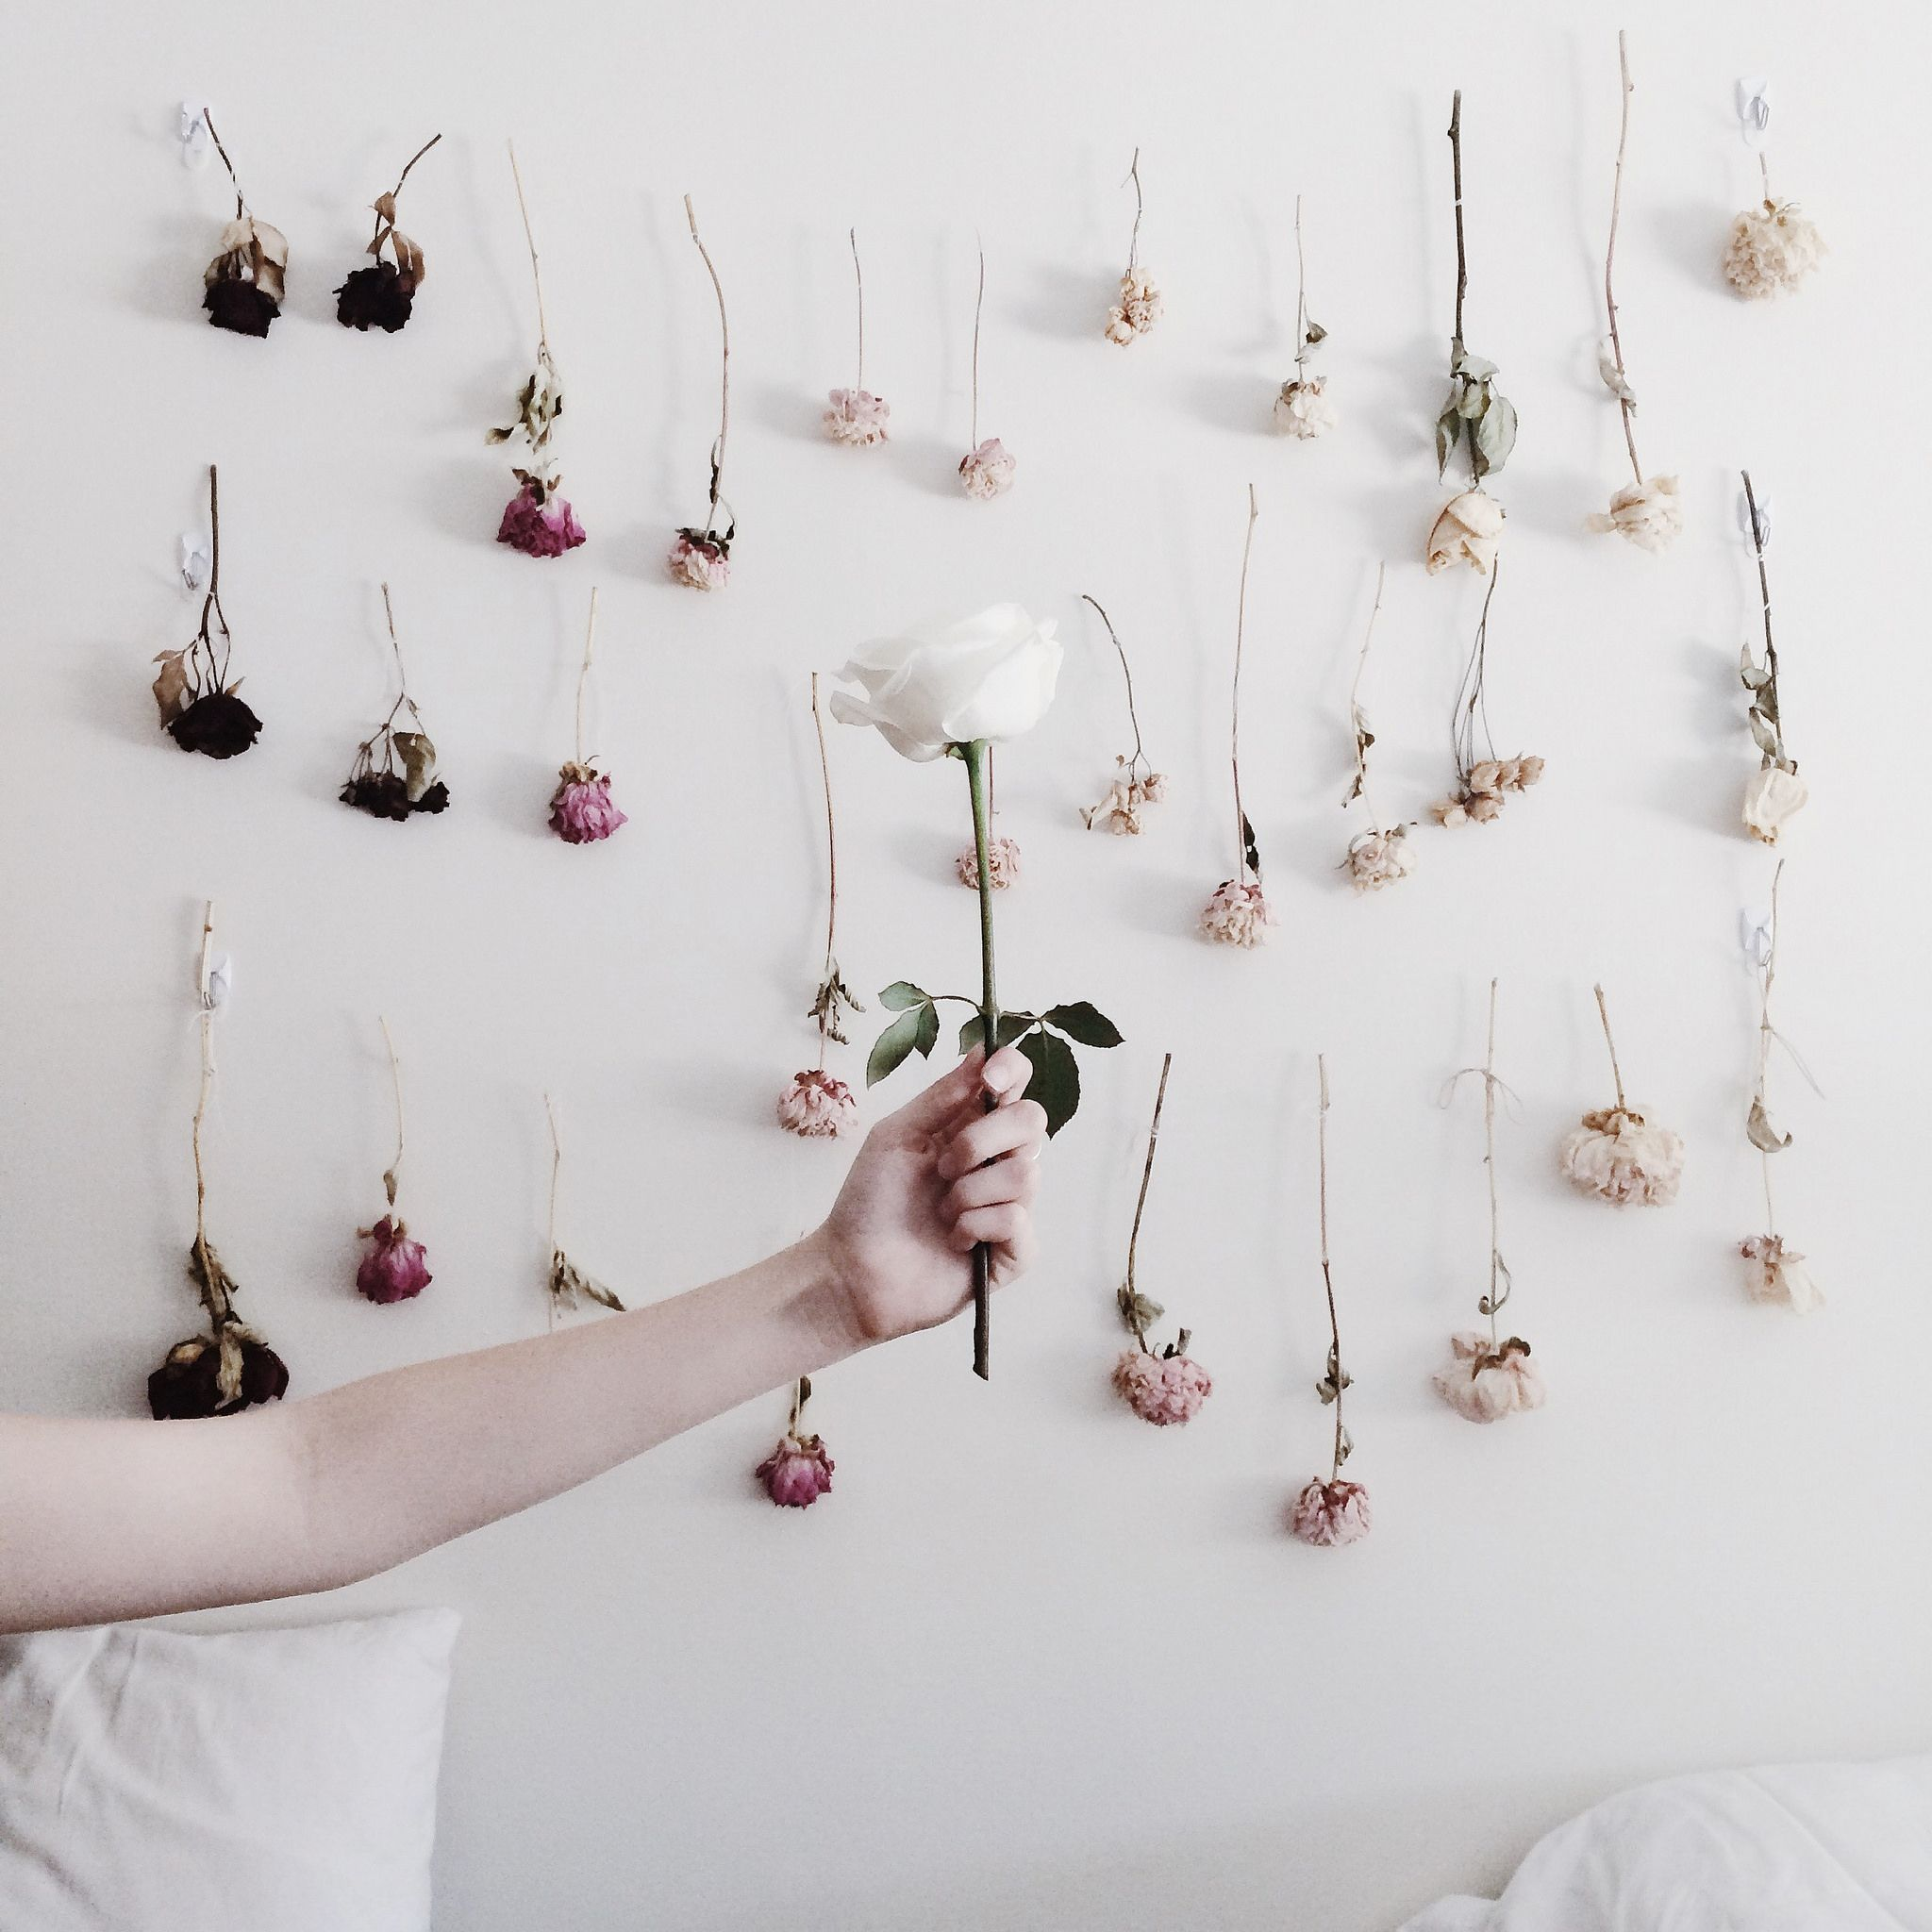 How To Preserve Flowerake A Dried Flower Wall On Juliettelaura Blo